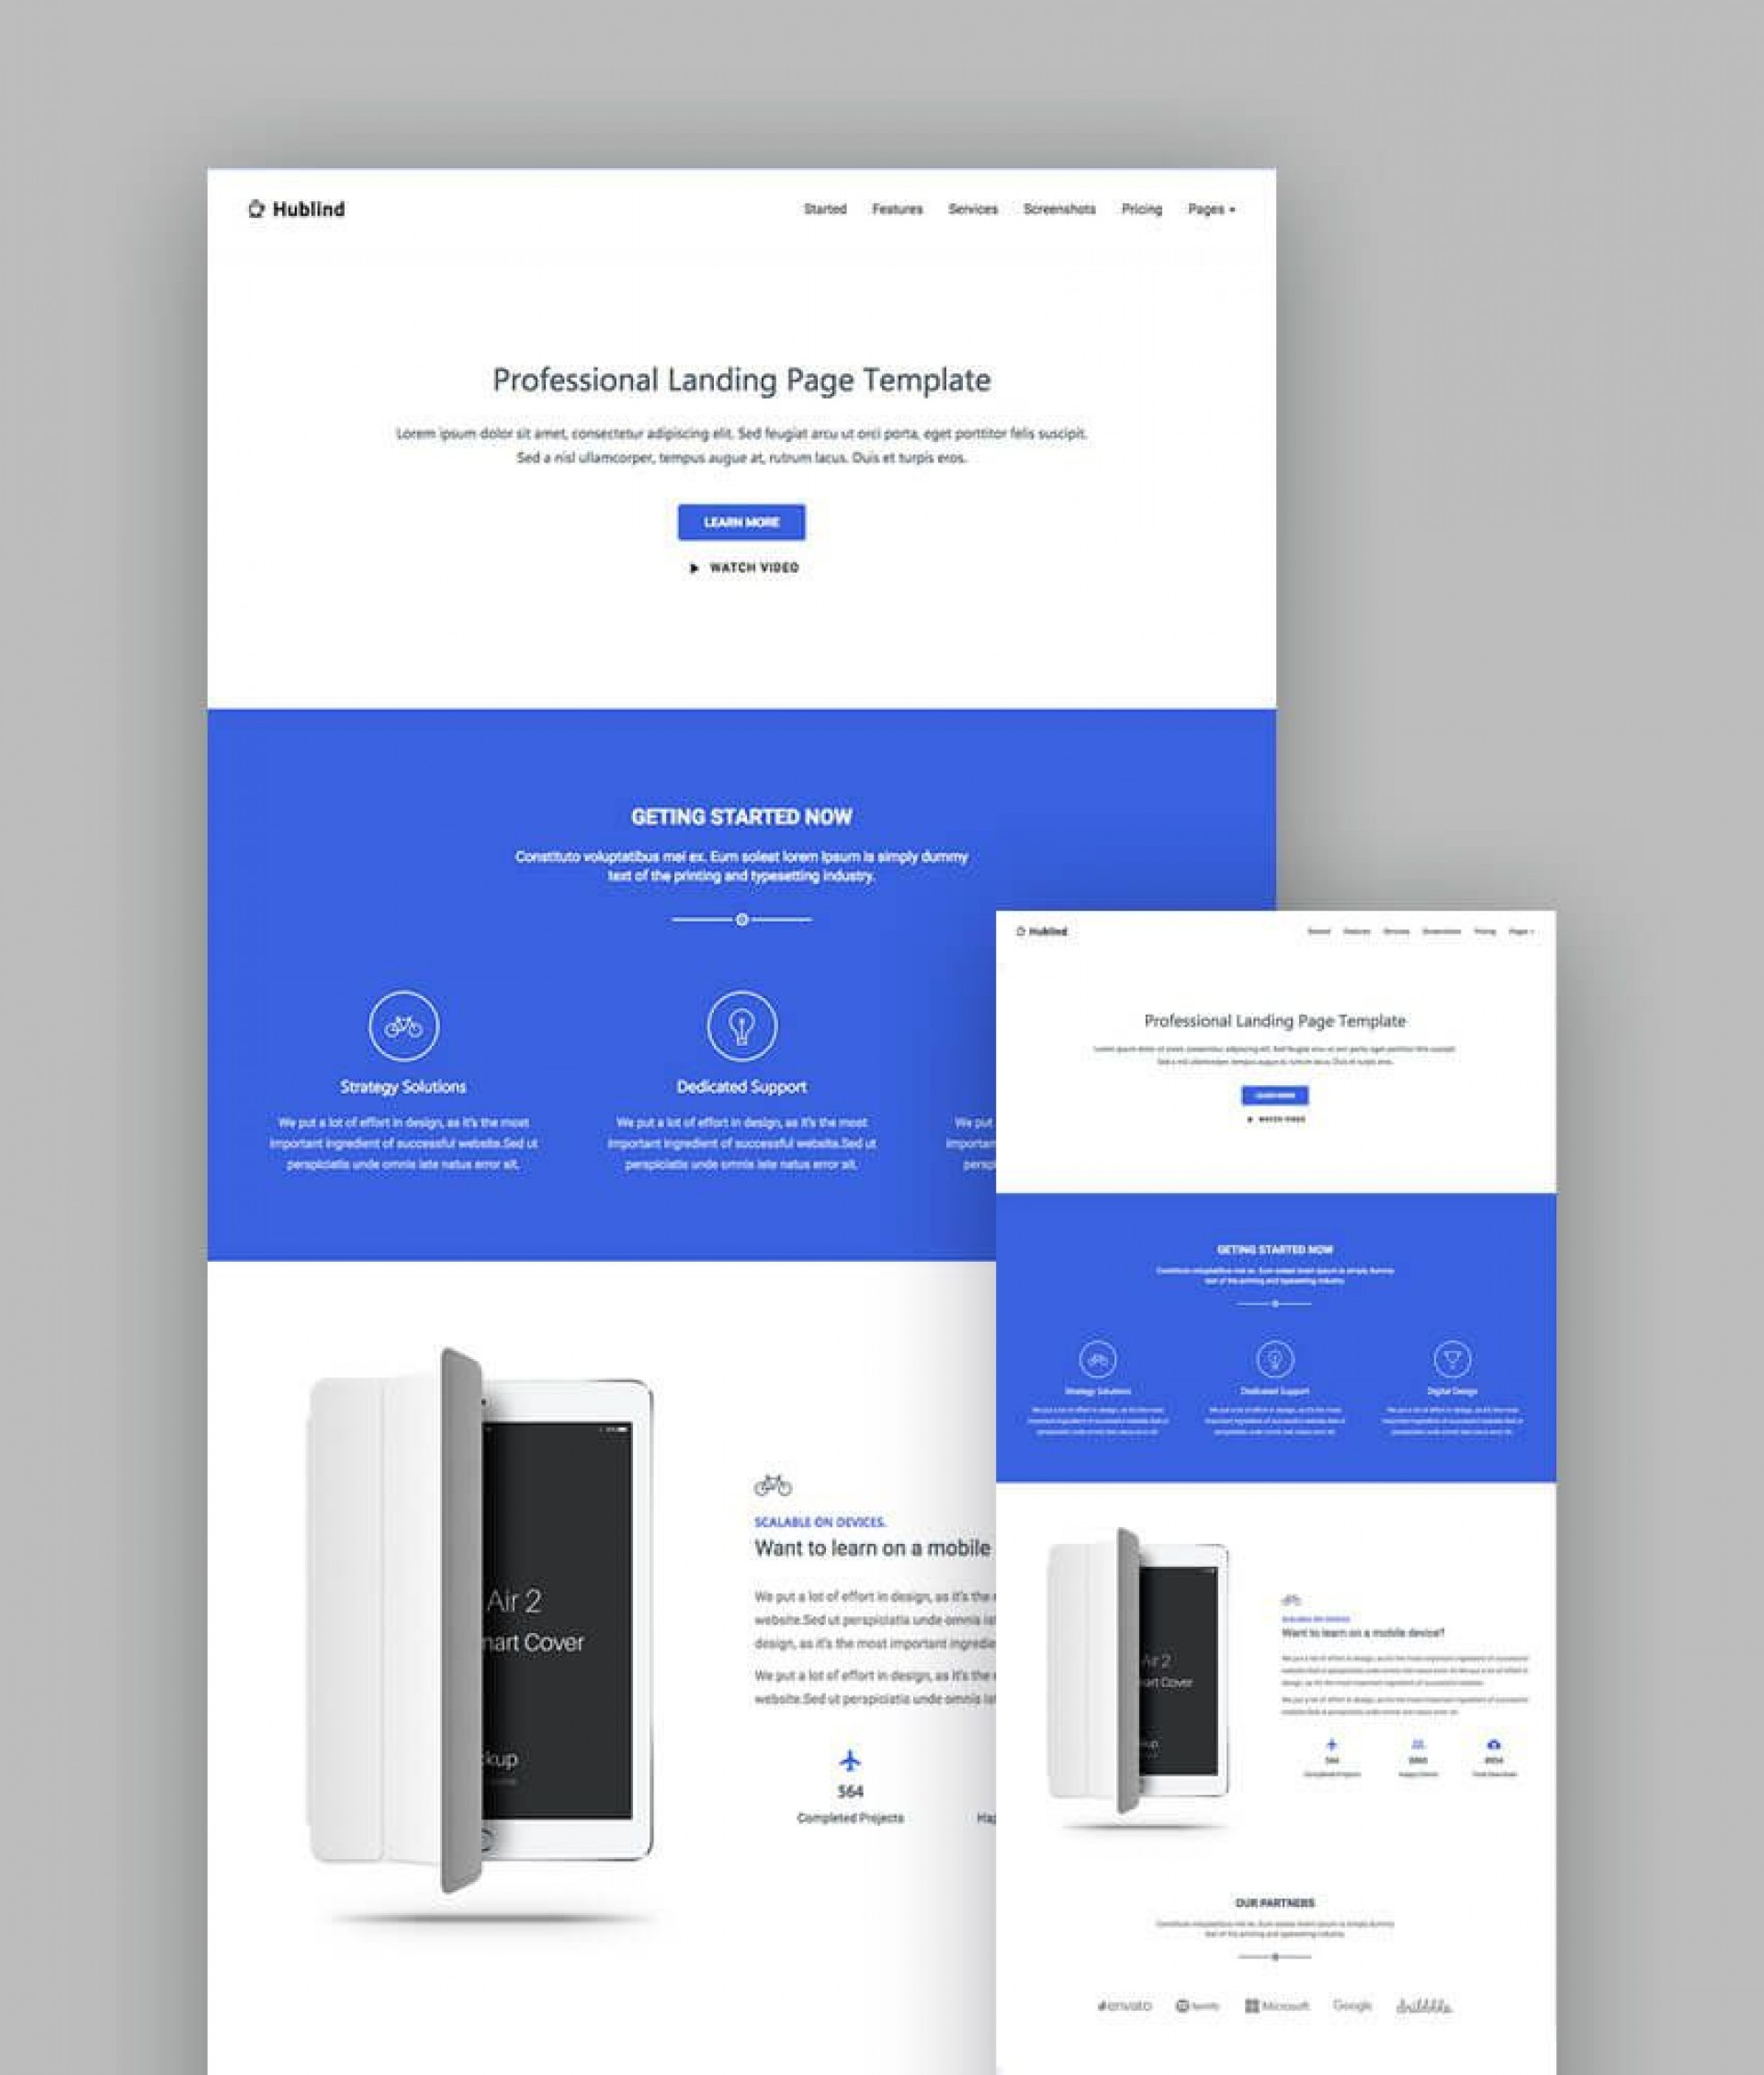 002 Formidable Responsive Landing Page Template Highest Clarity  Templates Html5 Free Download Wordpres Html1920